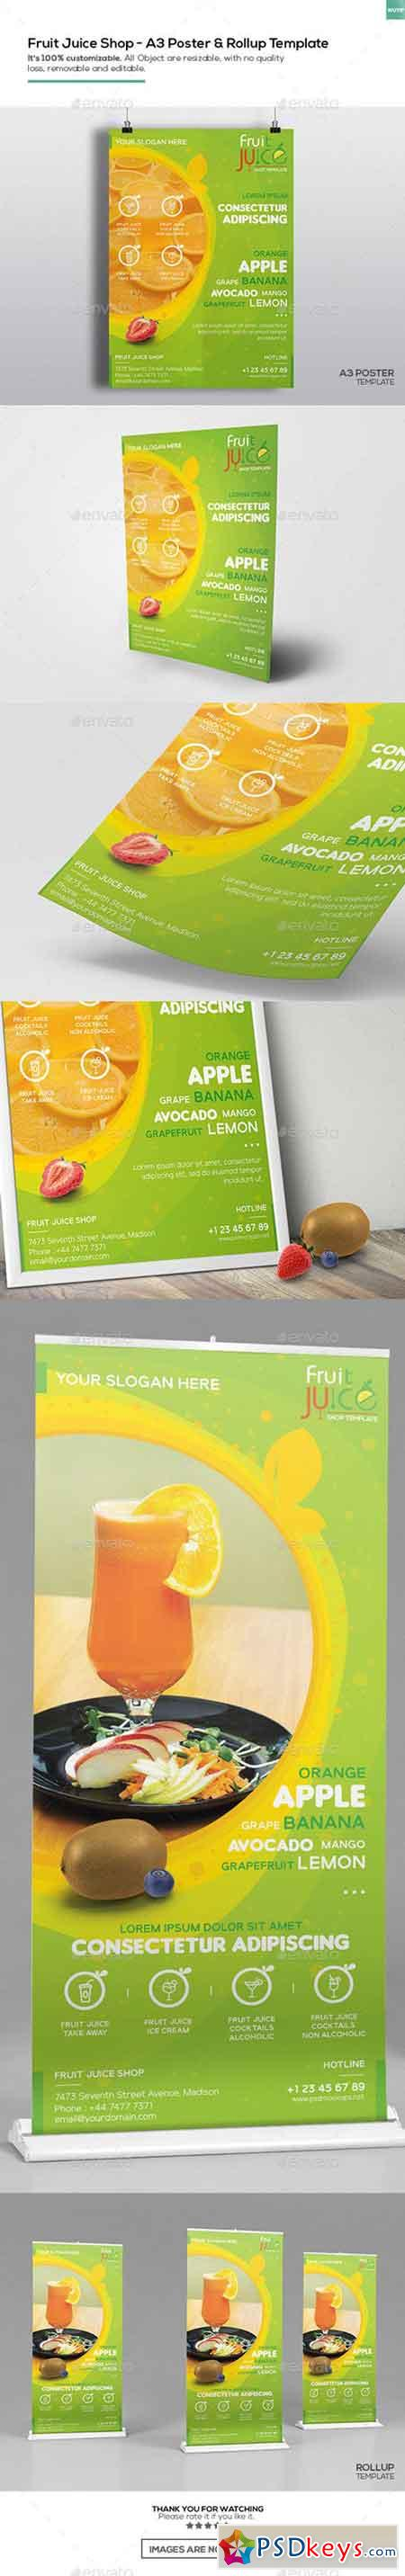 Fruit Juice Shop A3 Poster and Rollup Template 16402062